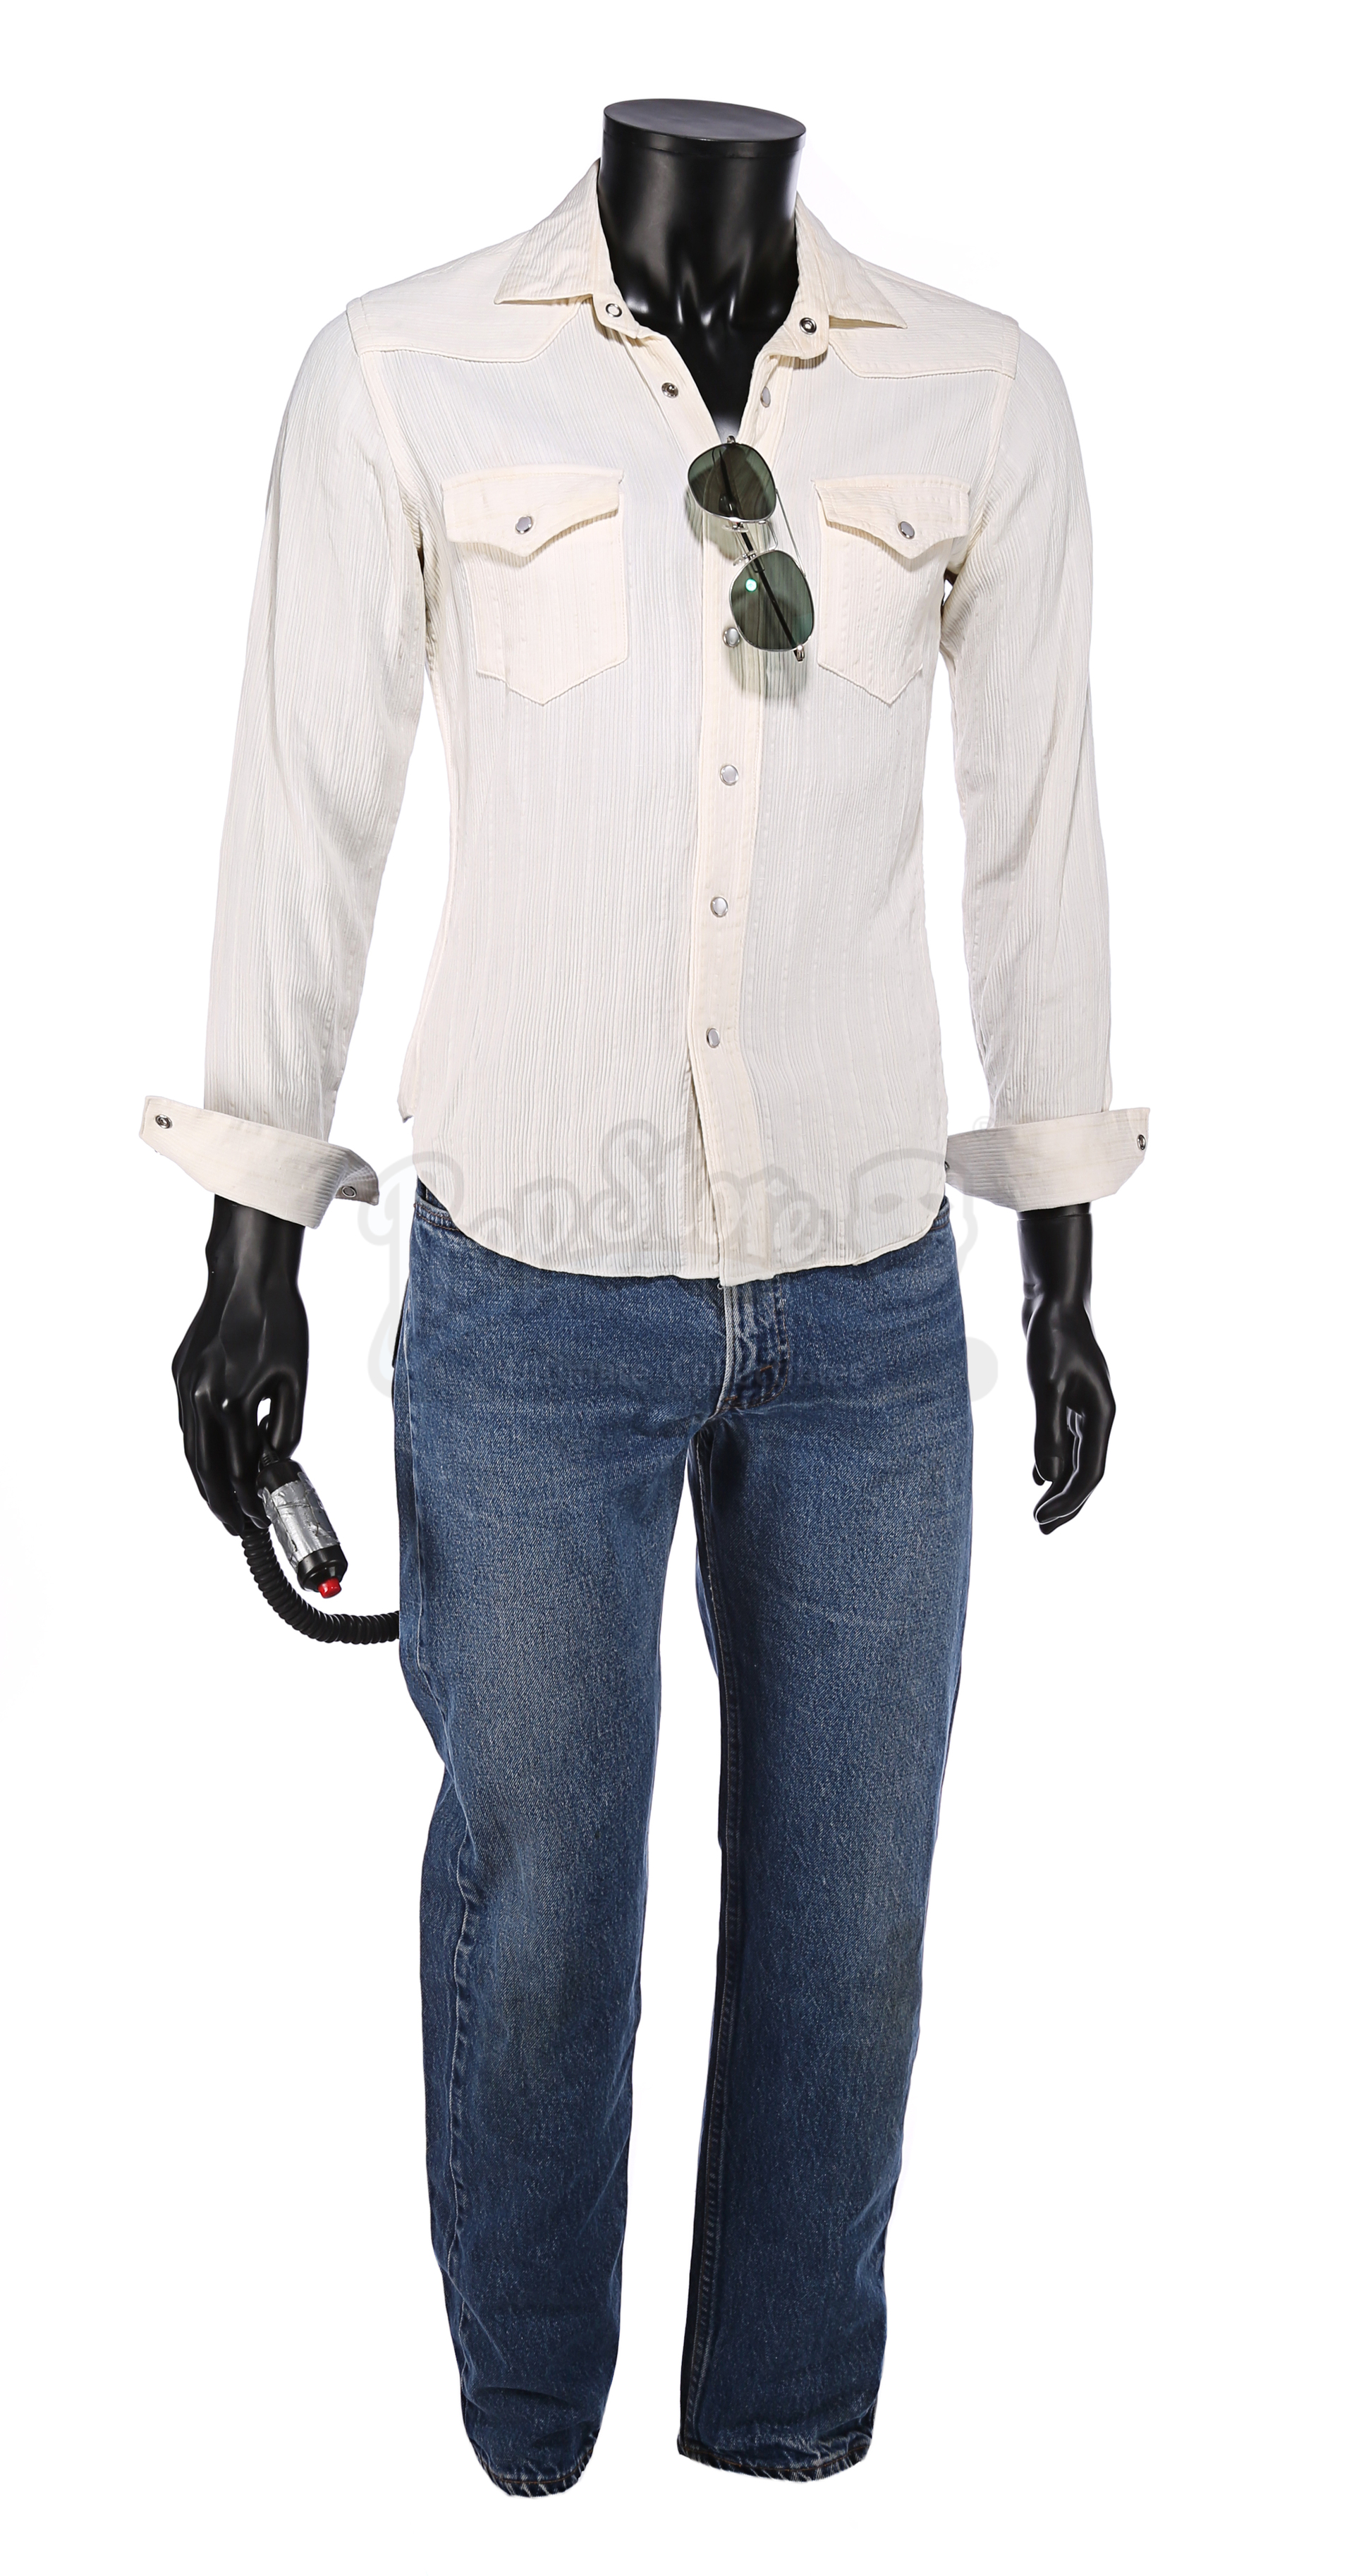 AMERICAN MADE (2017) - Barry Seal's (Tom Cruise) Costume - Image 6 of 23